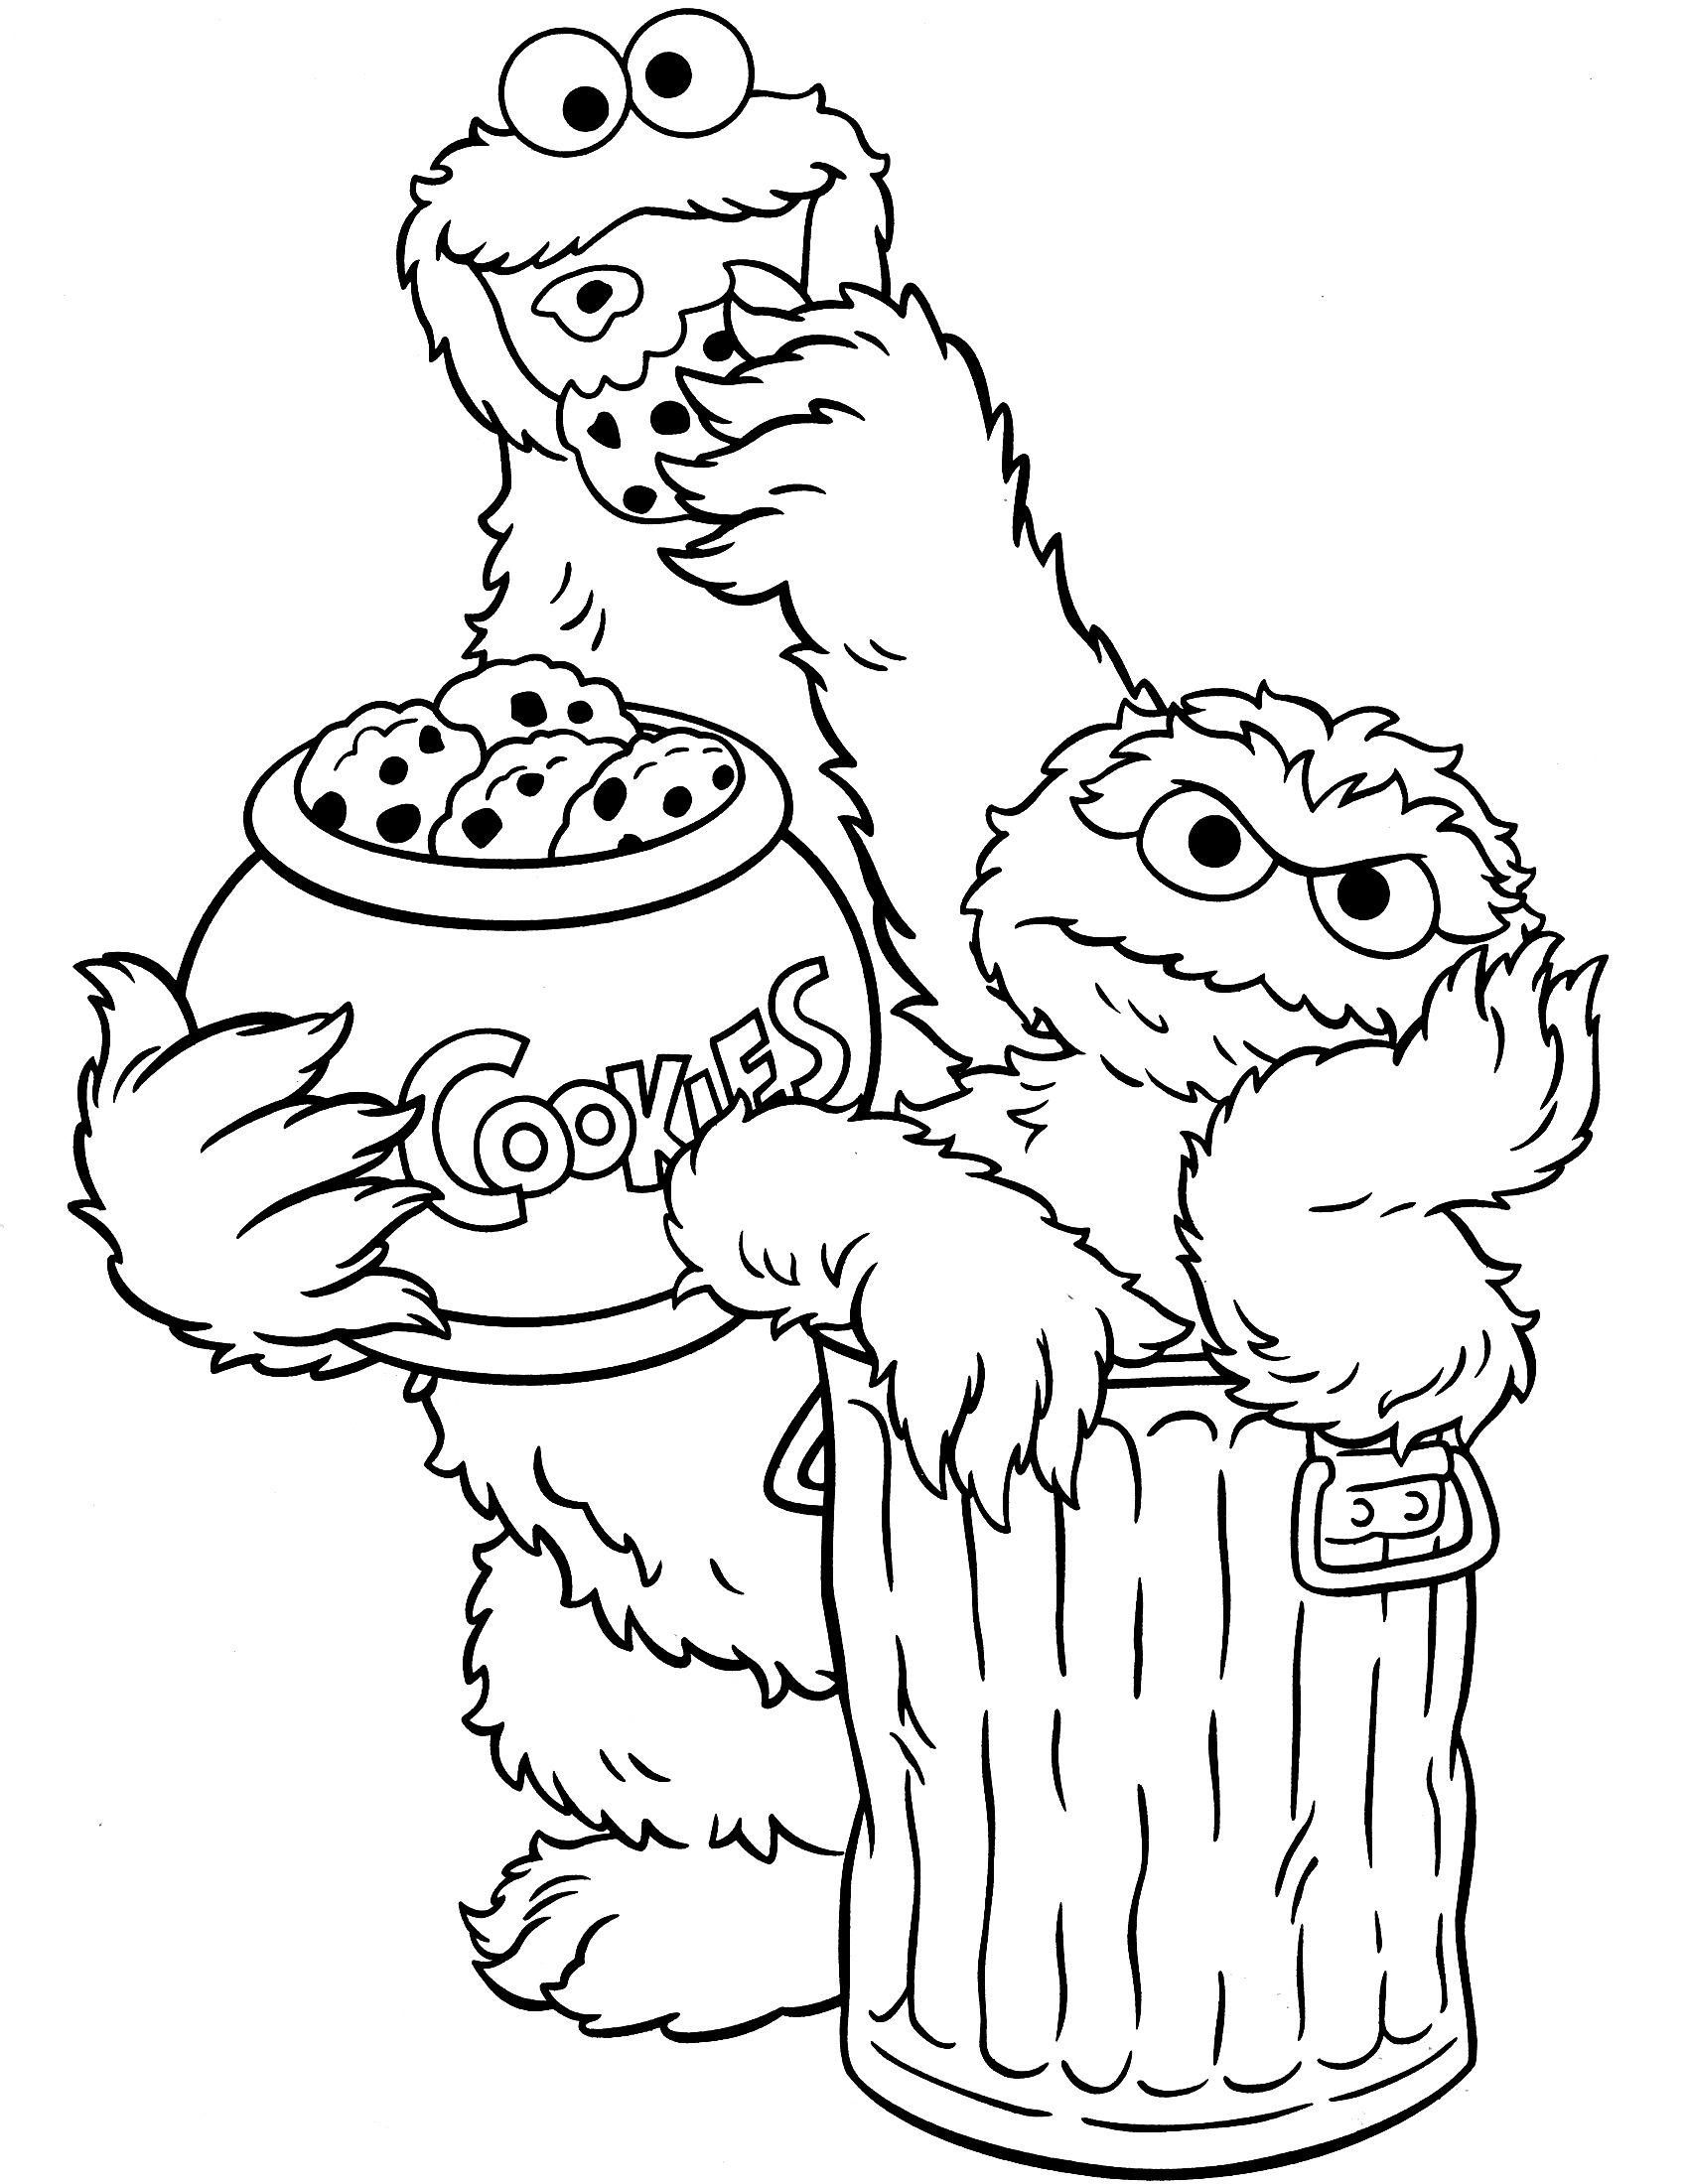 sesame street coloring pages google search